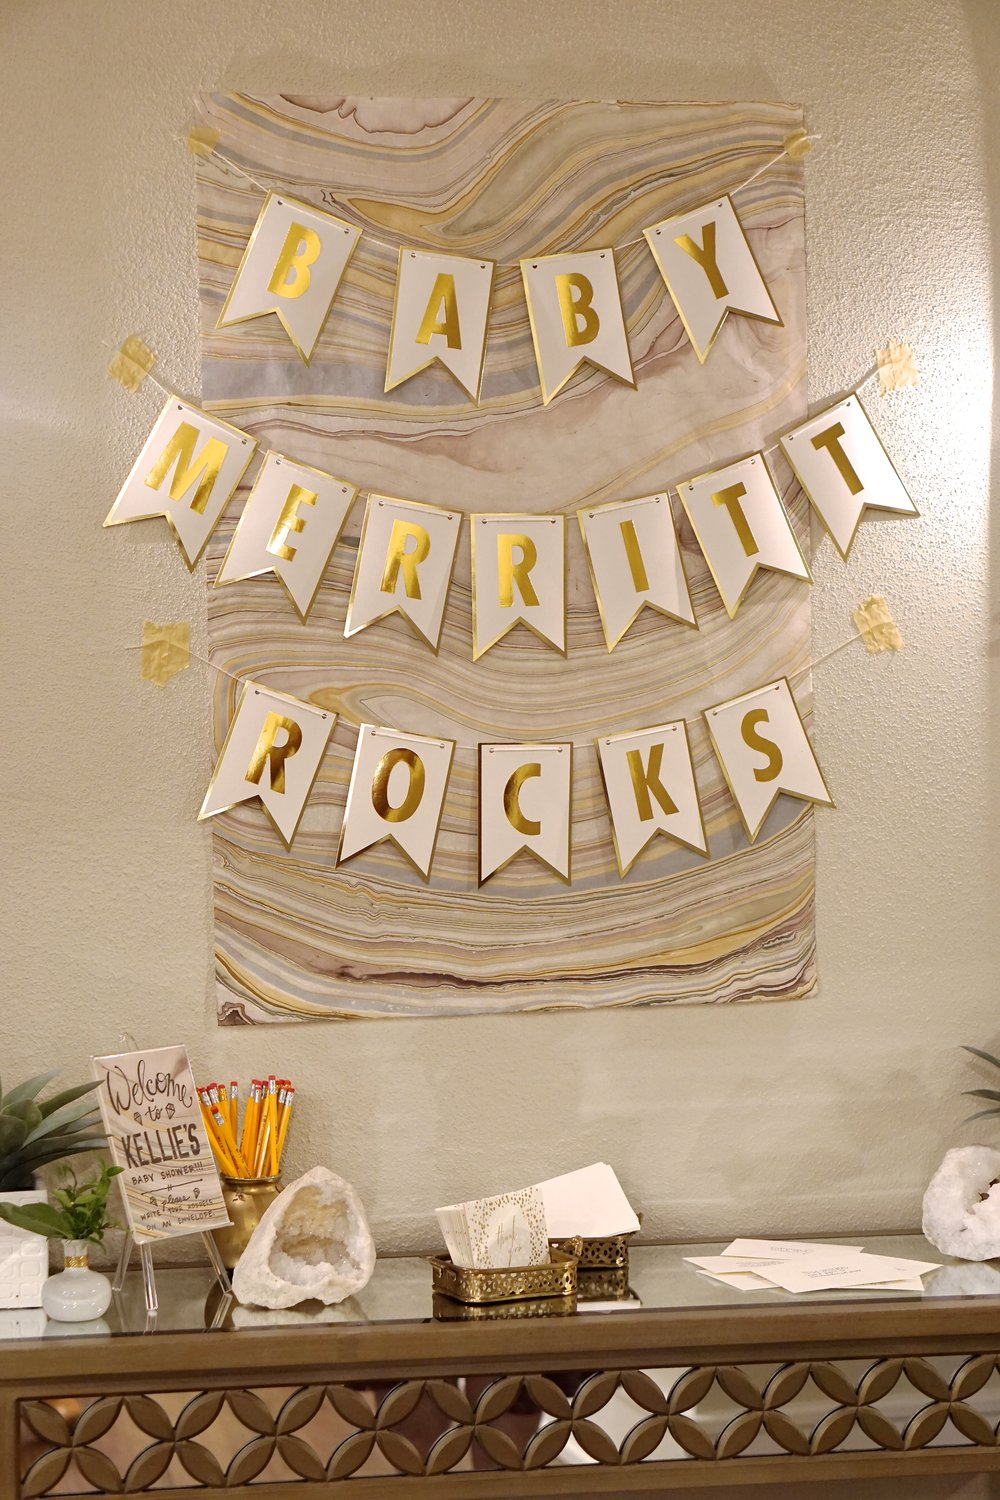 Gems + Geodes Baby Shower    Marbled papers, white crystalized geodes, fresh greenery, and an elegant color palette of earthy blushes, grays, and gold were the perfect feminine details for this gemstone-inspired baby shower for mom-to-be Kellie!